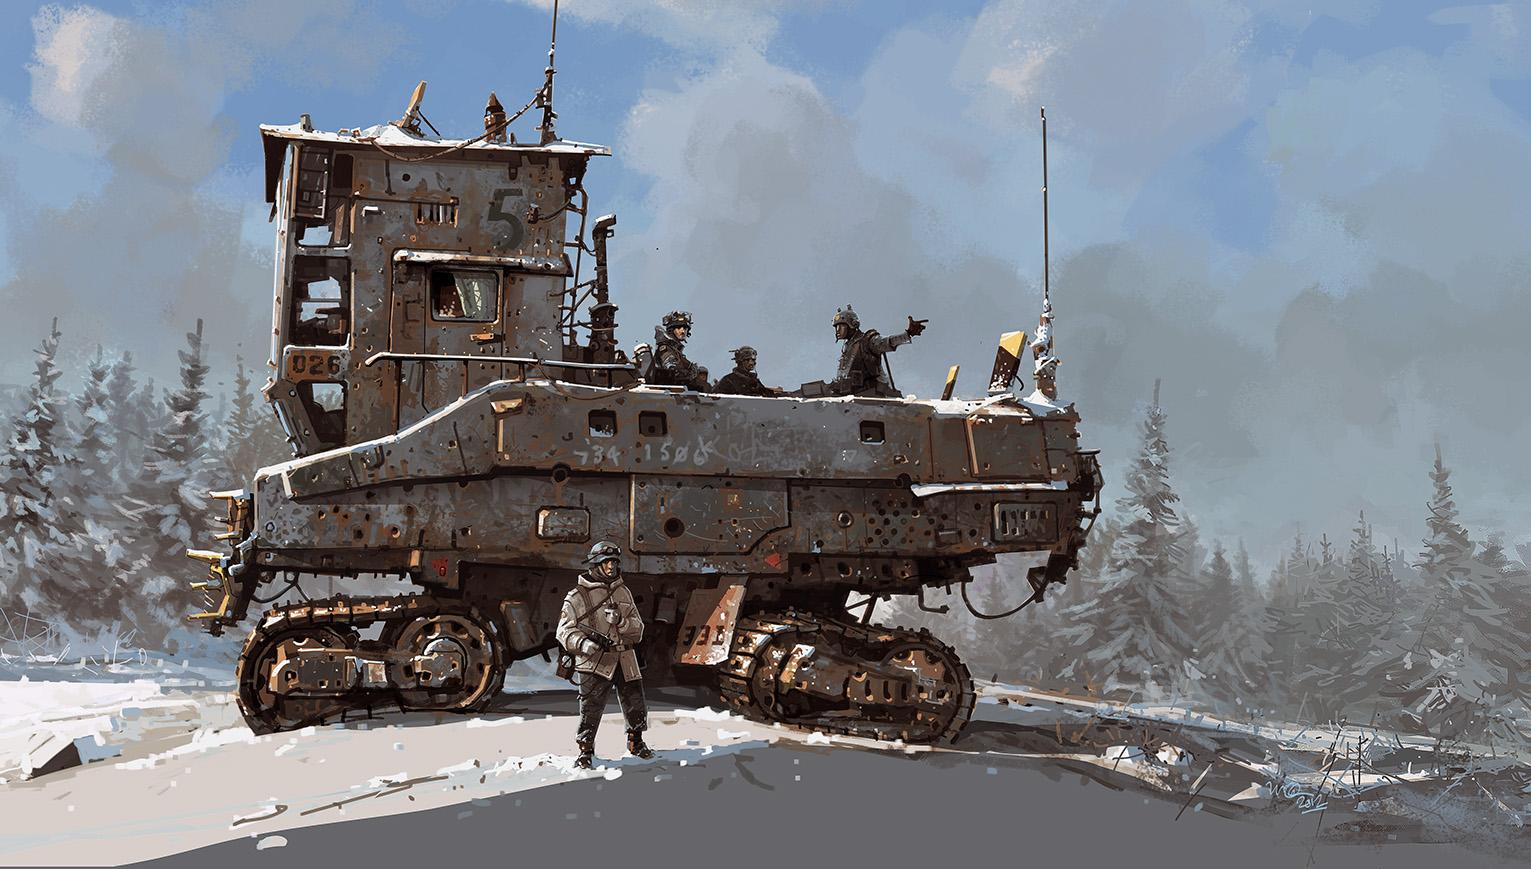 134160_troop-carrier_final_4-blog.jpg